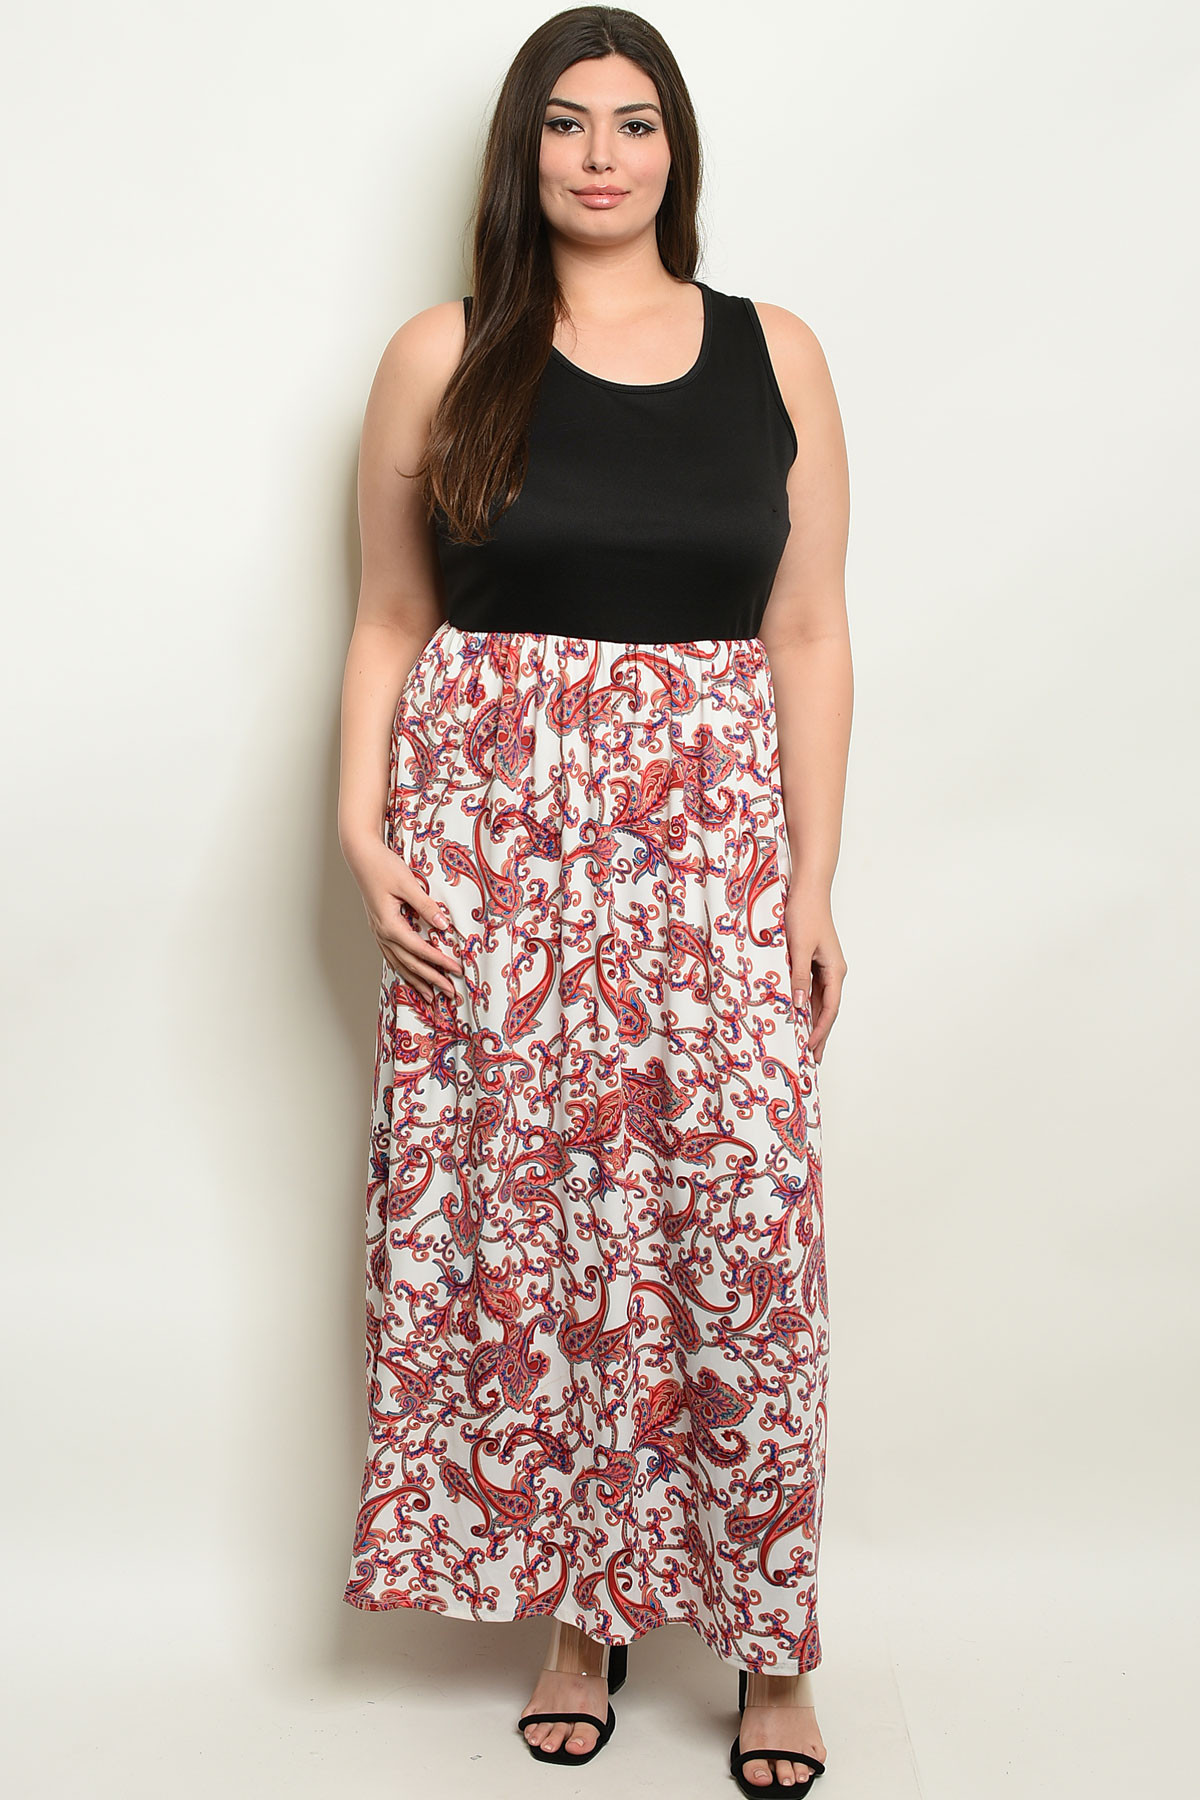 3cccbccfd436 ... BLACK RED PLUS SIZE DRESS 2-2- Larger Photo ...